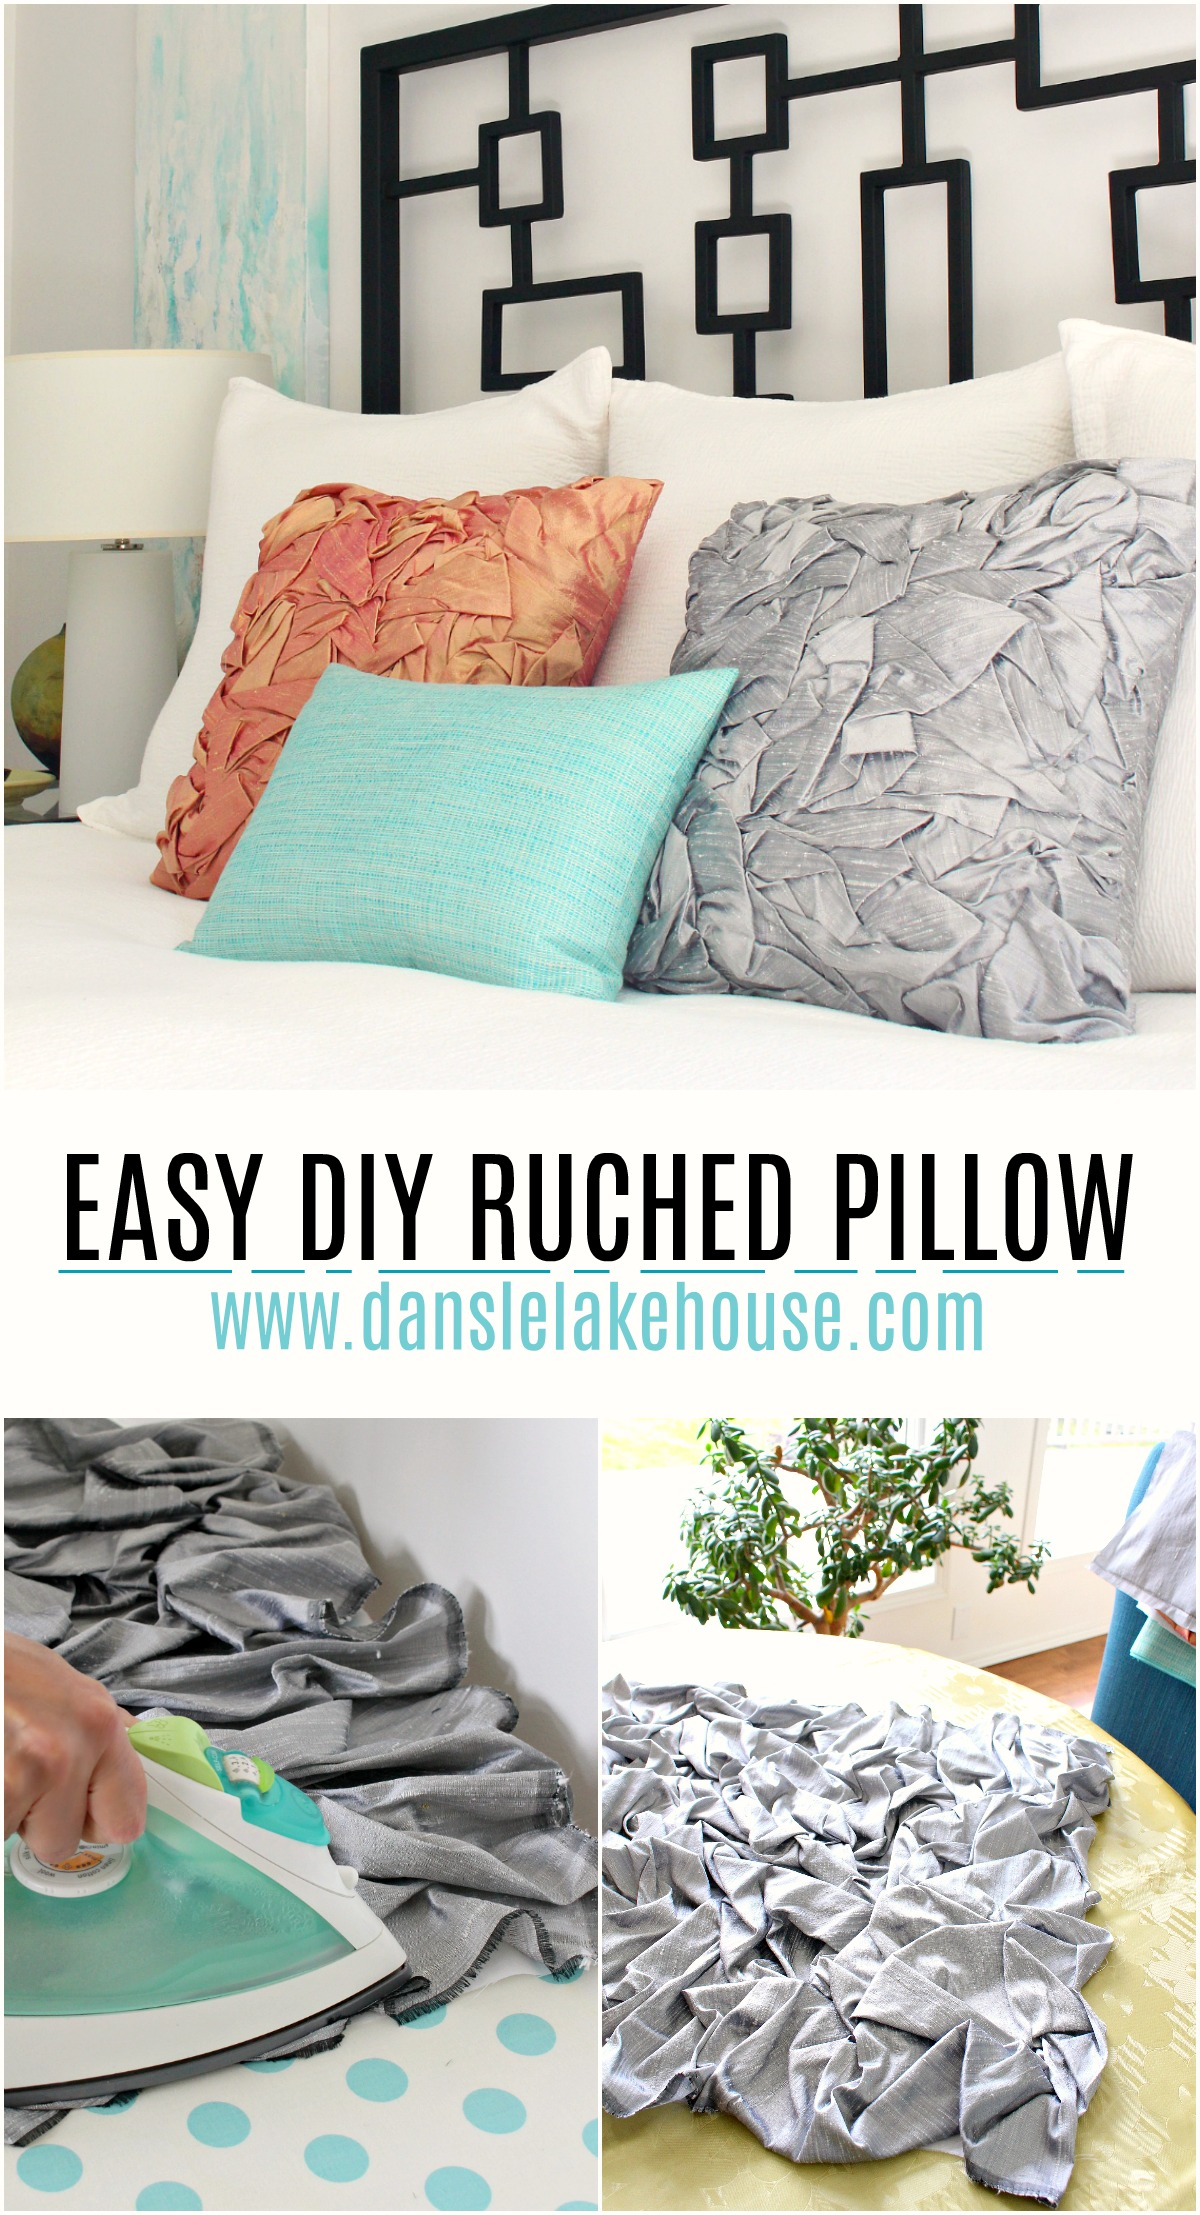 Easy DIY Ruched Pillow